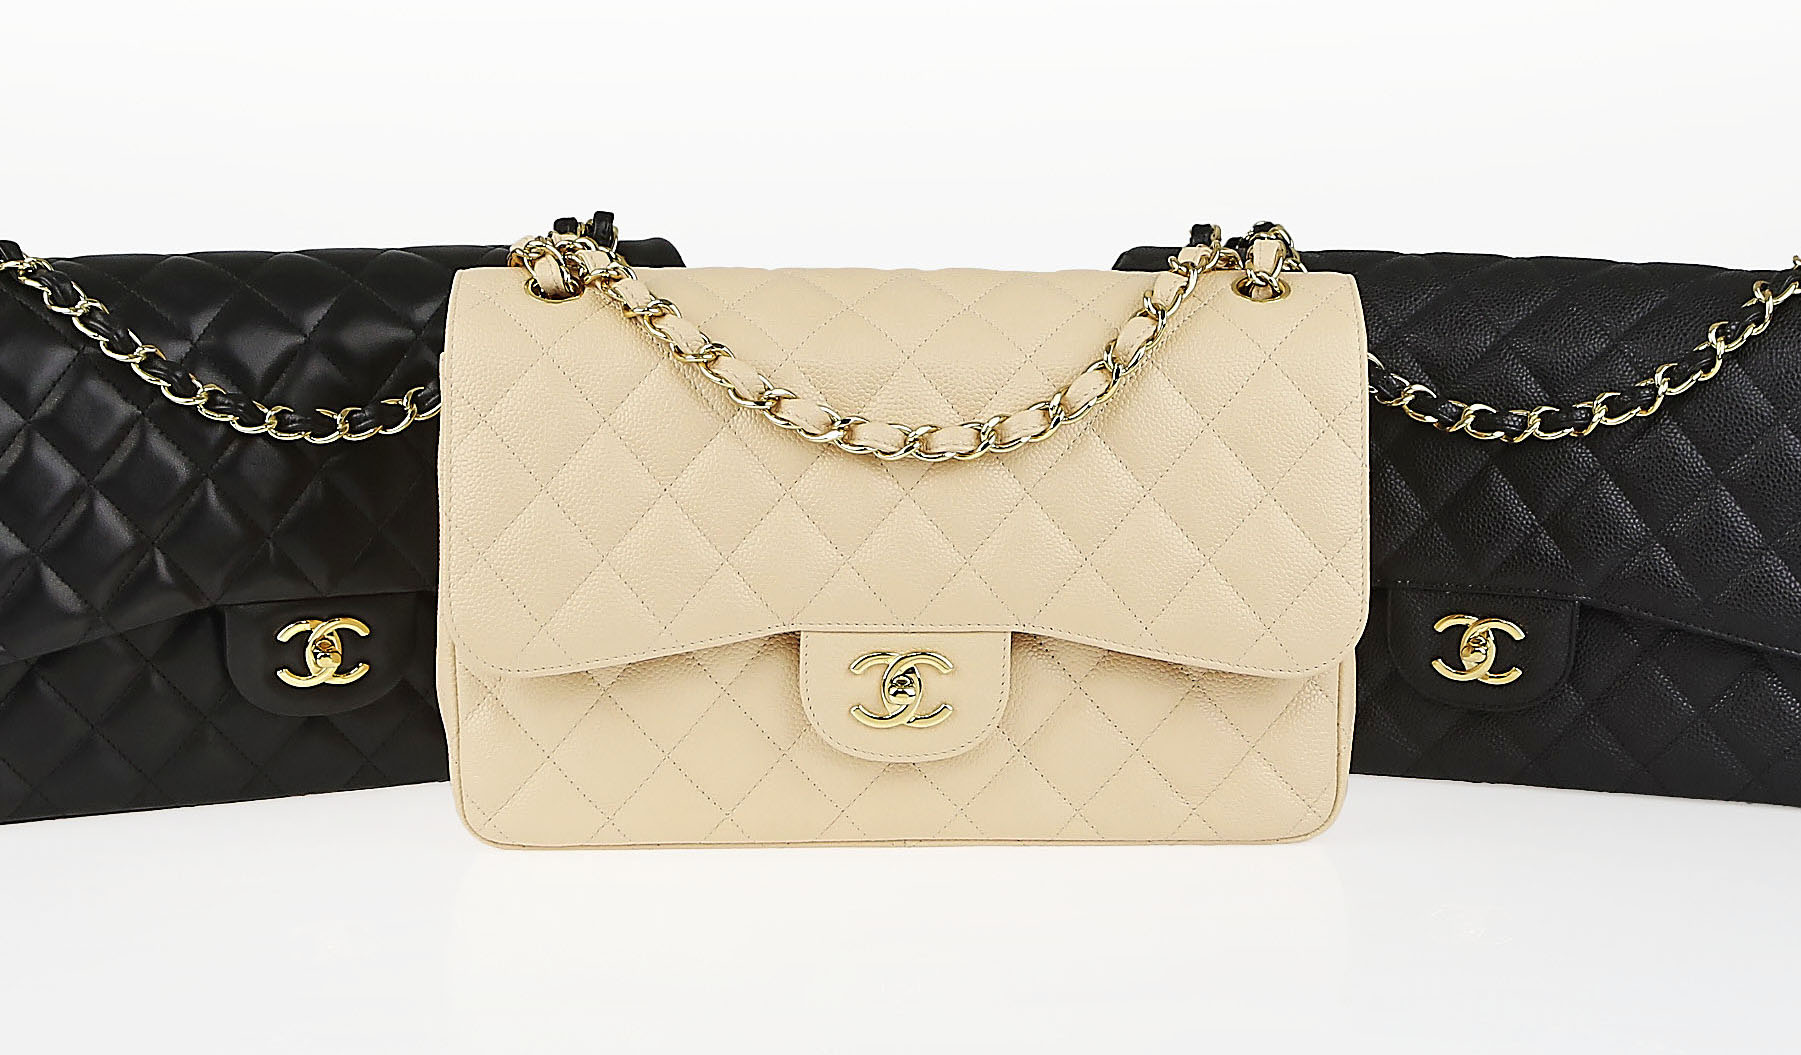 Authentic Chanel Classic Flap Bags Real 24k Gold